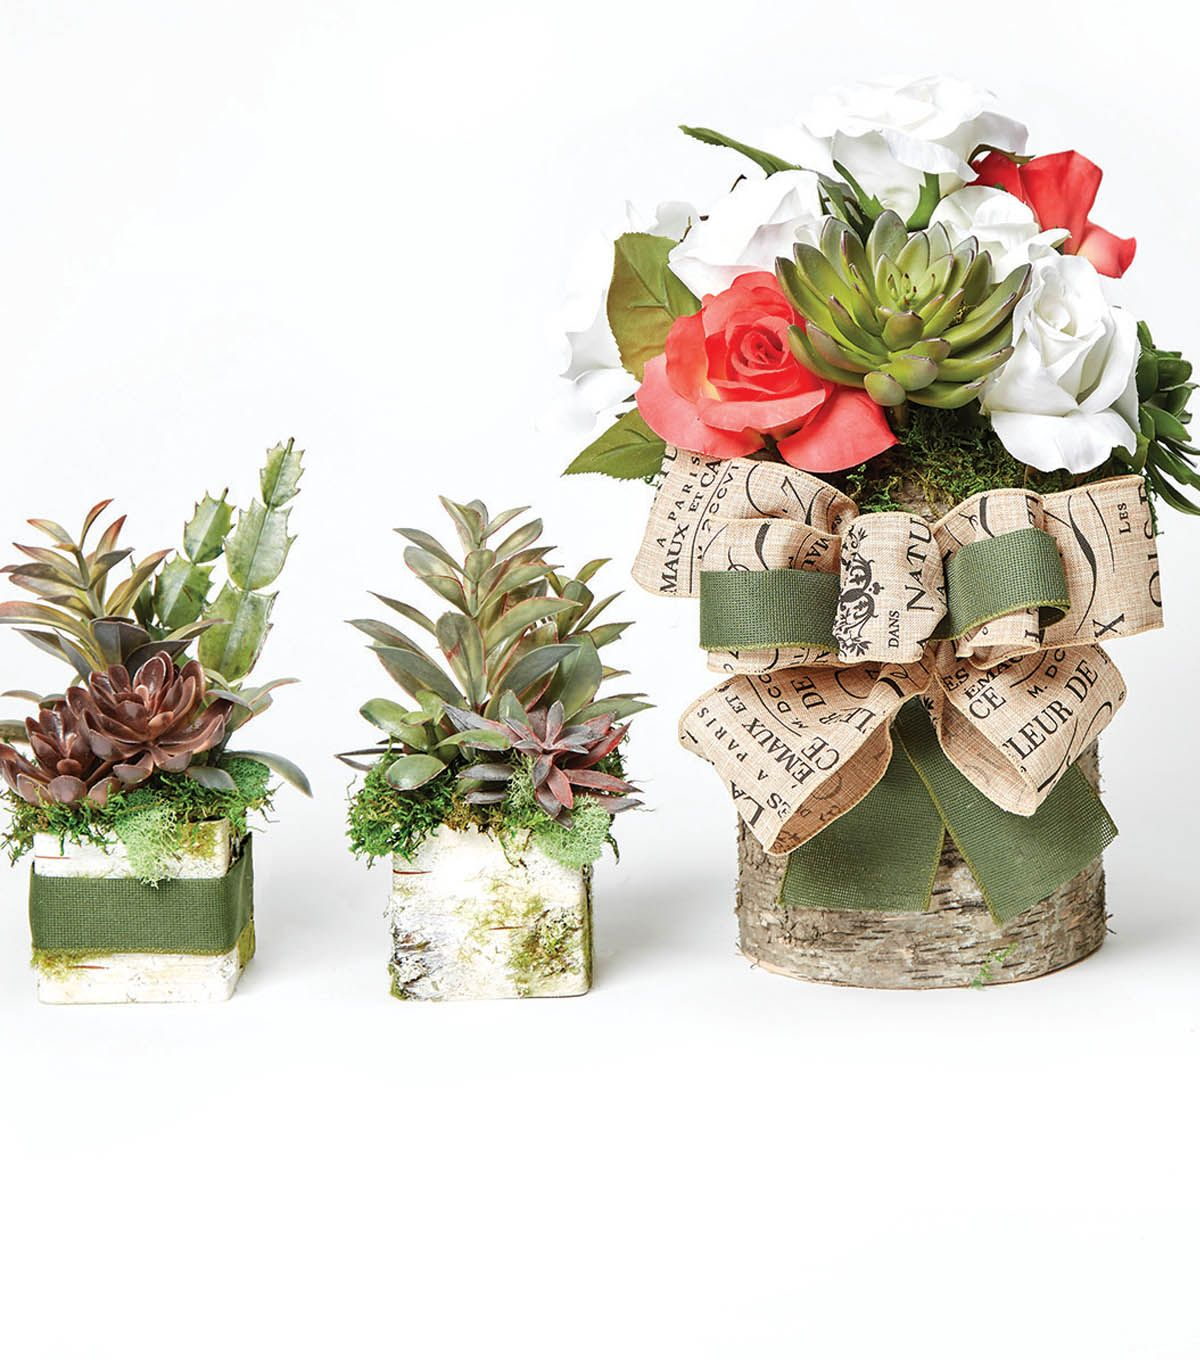 How to make succulent birch containers gardens outdoor decor with joann pinterest birch - How to make a succulent container garden ...